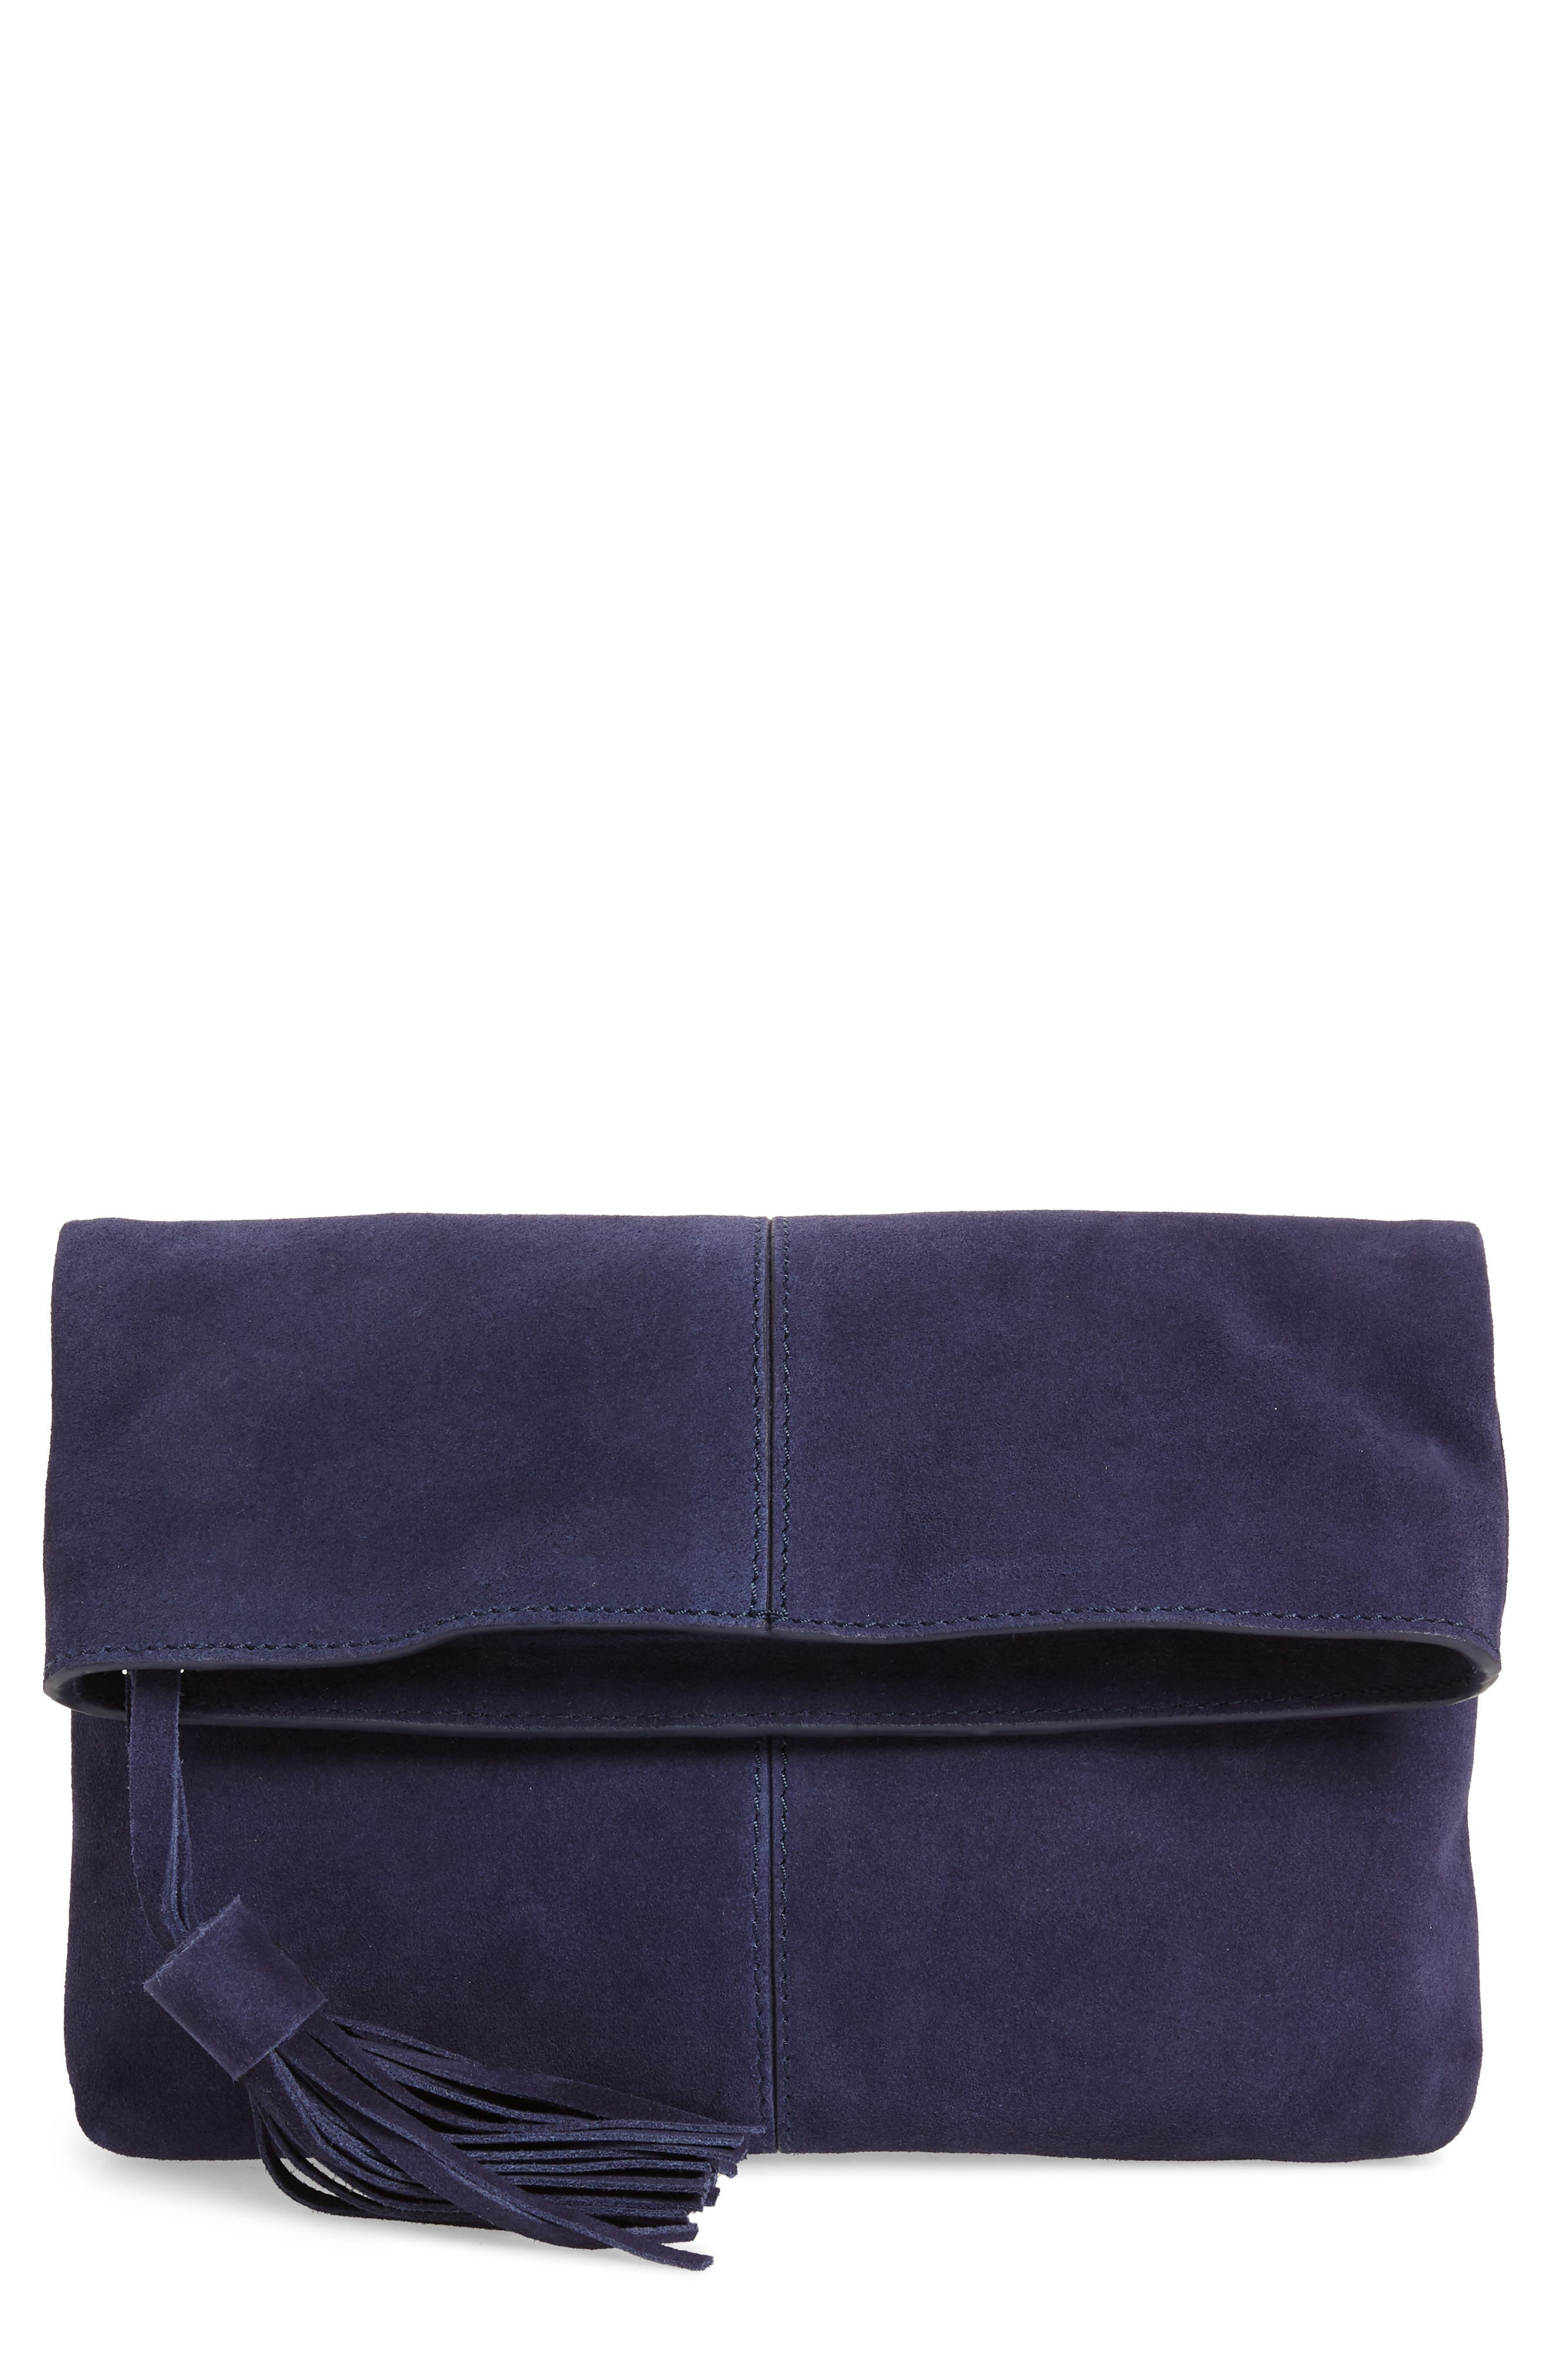 Suede Clutch,                             Main thumbnail 1, color,                             NAVY